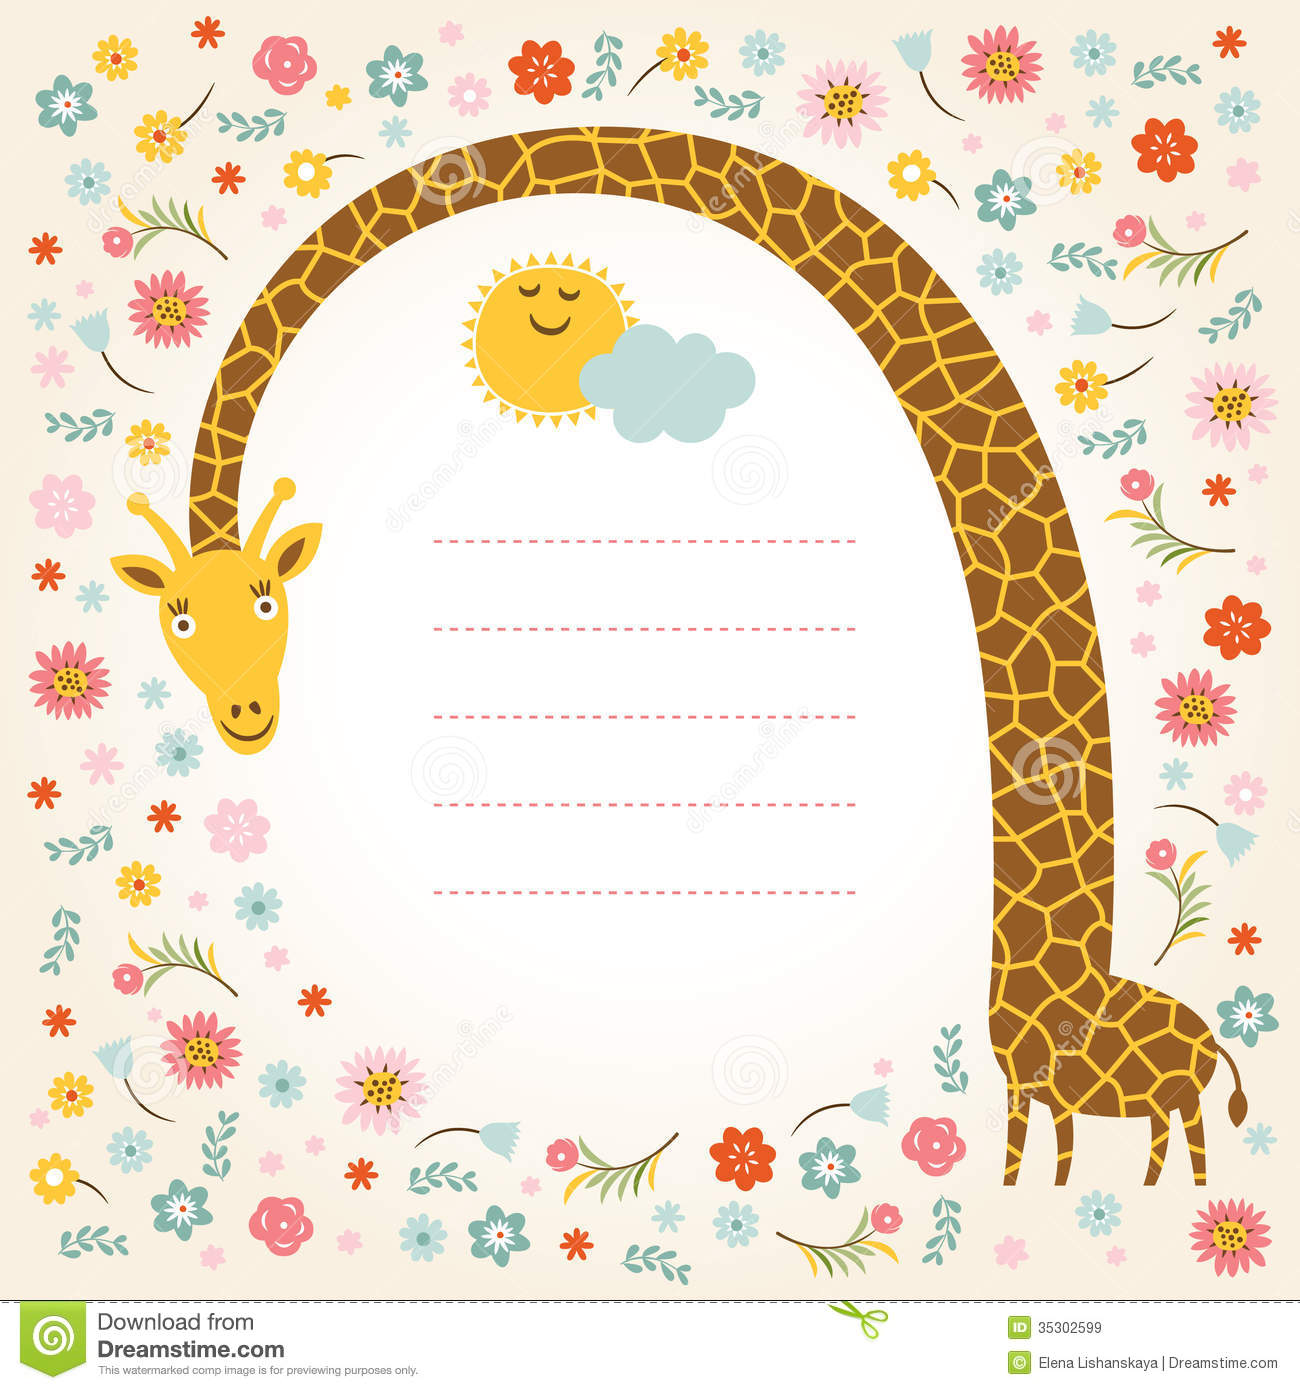 Giraffe Wearing A Dress further Giraffe Face Template besides Buffalo1 also Stock Photography Funny Zebra Cartoon Image27048902 as well Cartoon Giraffe Face. on giraffe head clip art